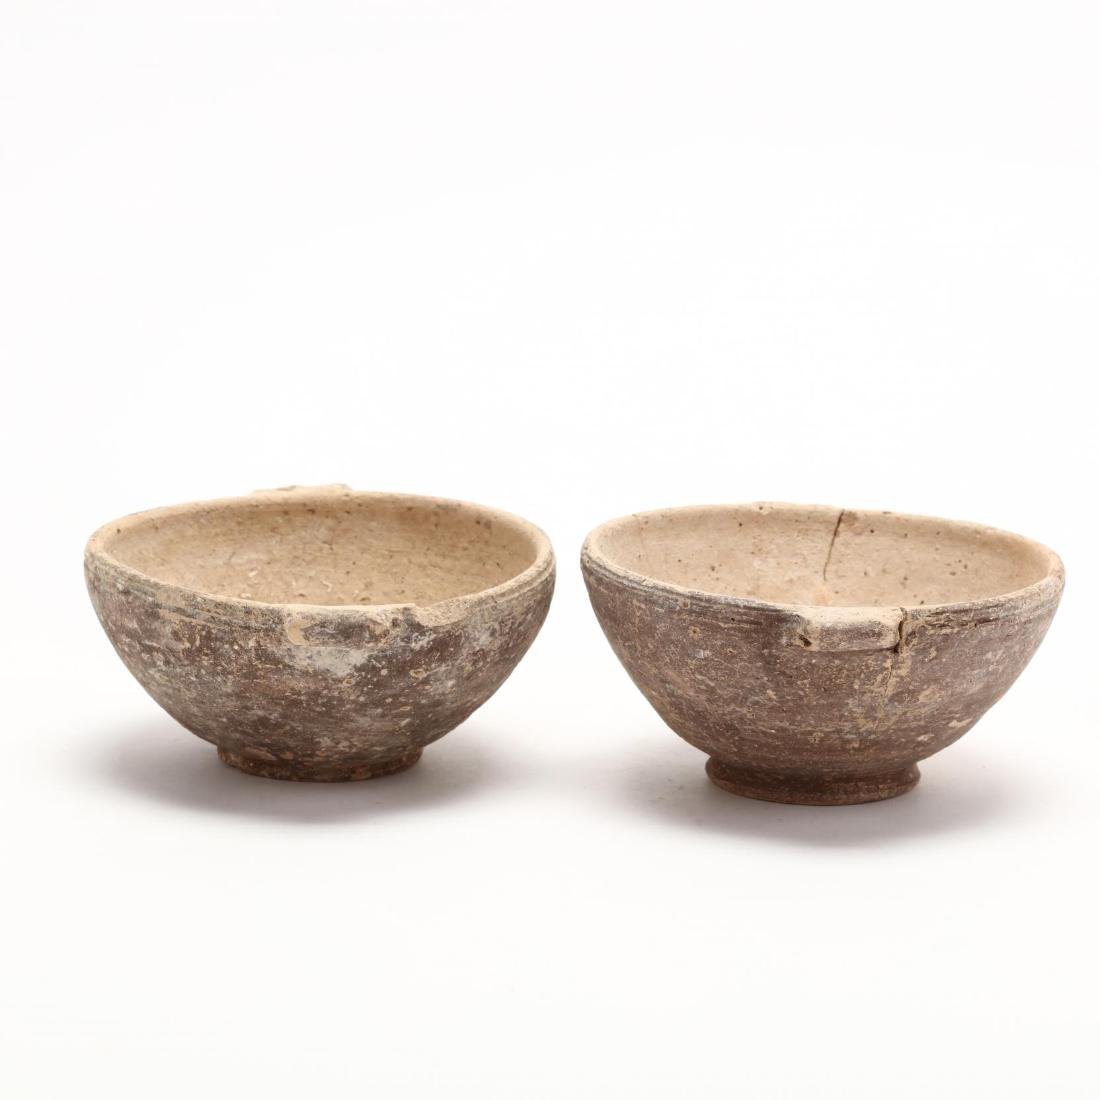 Two Cypriot Hellenistic White Ware Bowls, Ex. Morris - 3